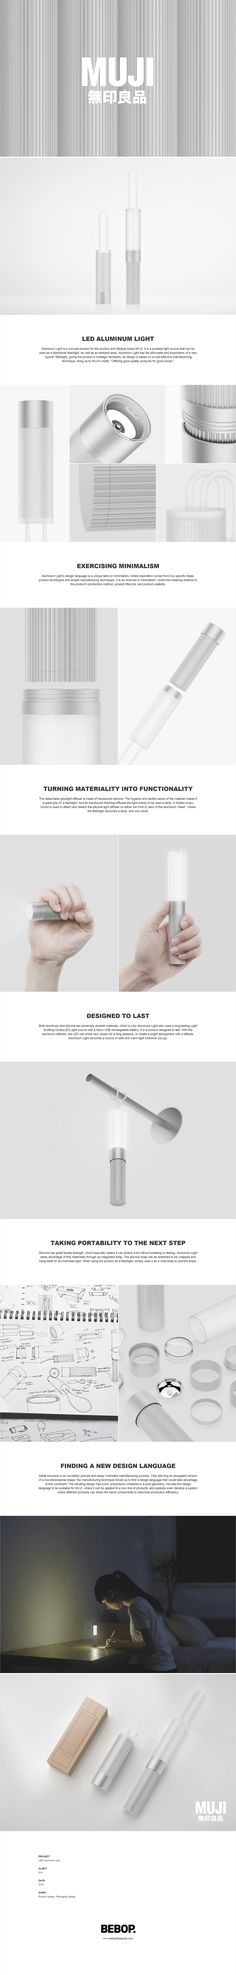 Aluminum Light is a concept product for the product and lifestyle brand MUJI. Web Design, Lamp Design, Lighting Design, Modern Design, Graphic Design, Portfolio Layout, Portfolio Design, Web Layout, Layout Design